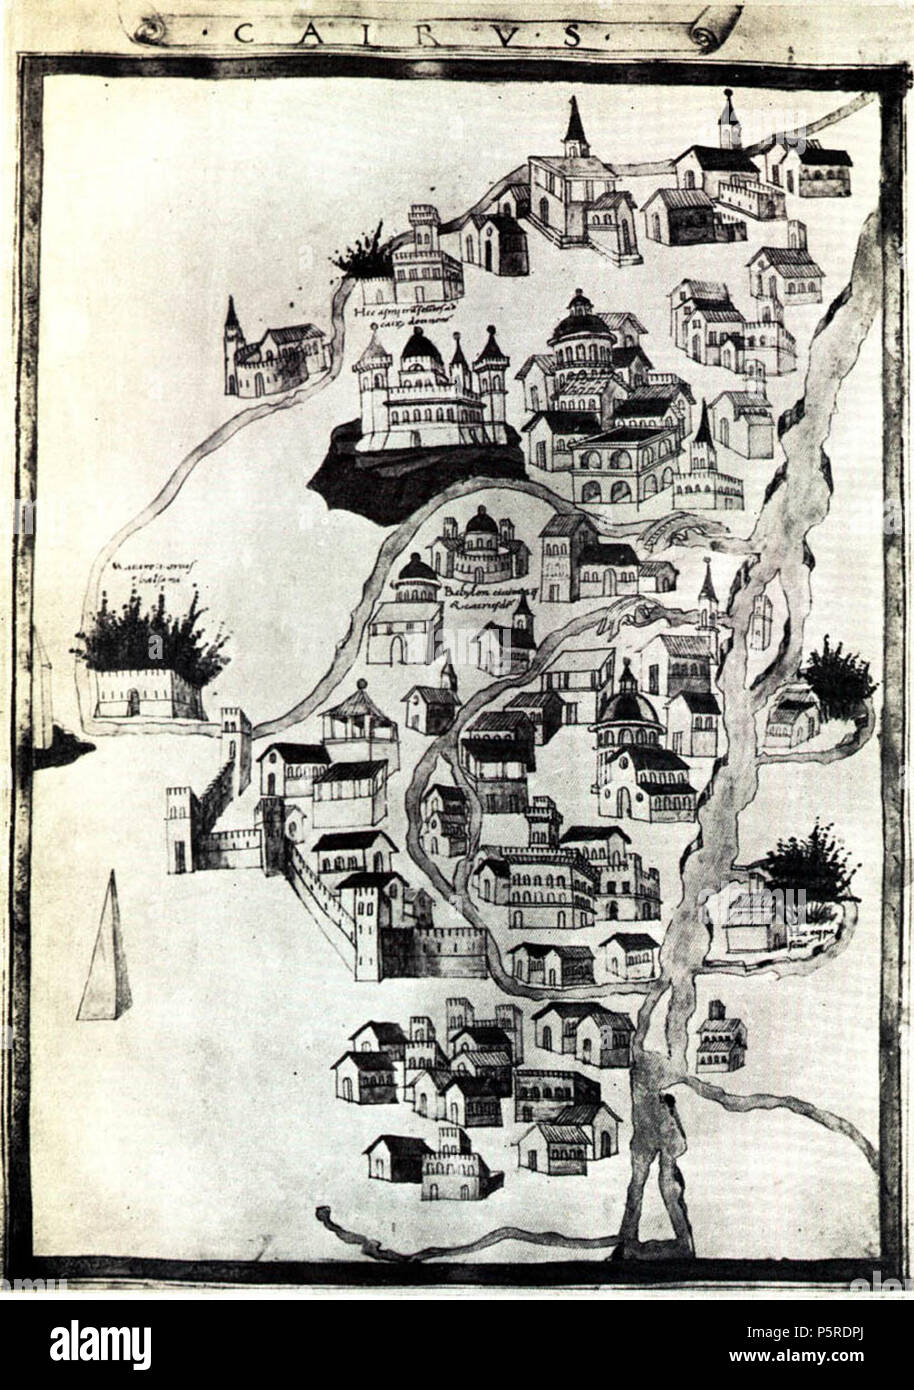 N/A. Deutsch: Historische Karte von Kairo, Ägypten English: Historic map of Cairo, Egypt. 1492. Hartman Schedel (1440-1514) 263 Cairo map1492 schedel - Stock Image